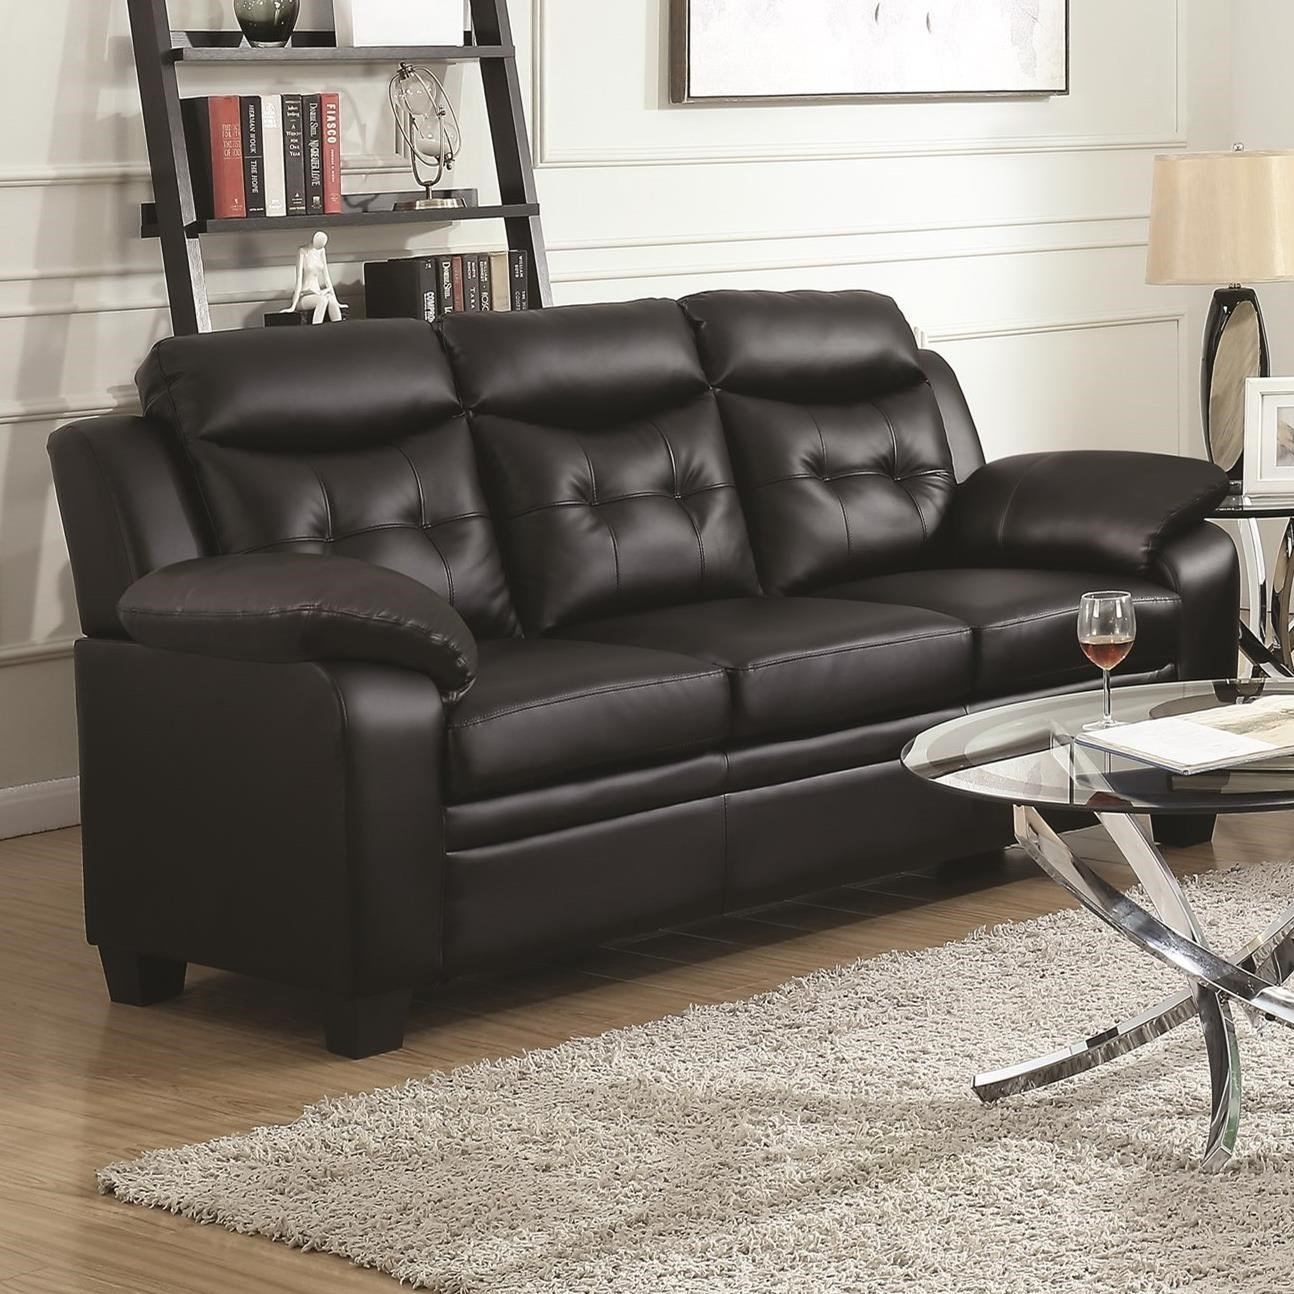 Coaster Finley Sofa With Extreme Padding